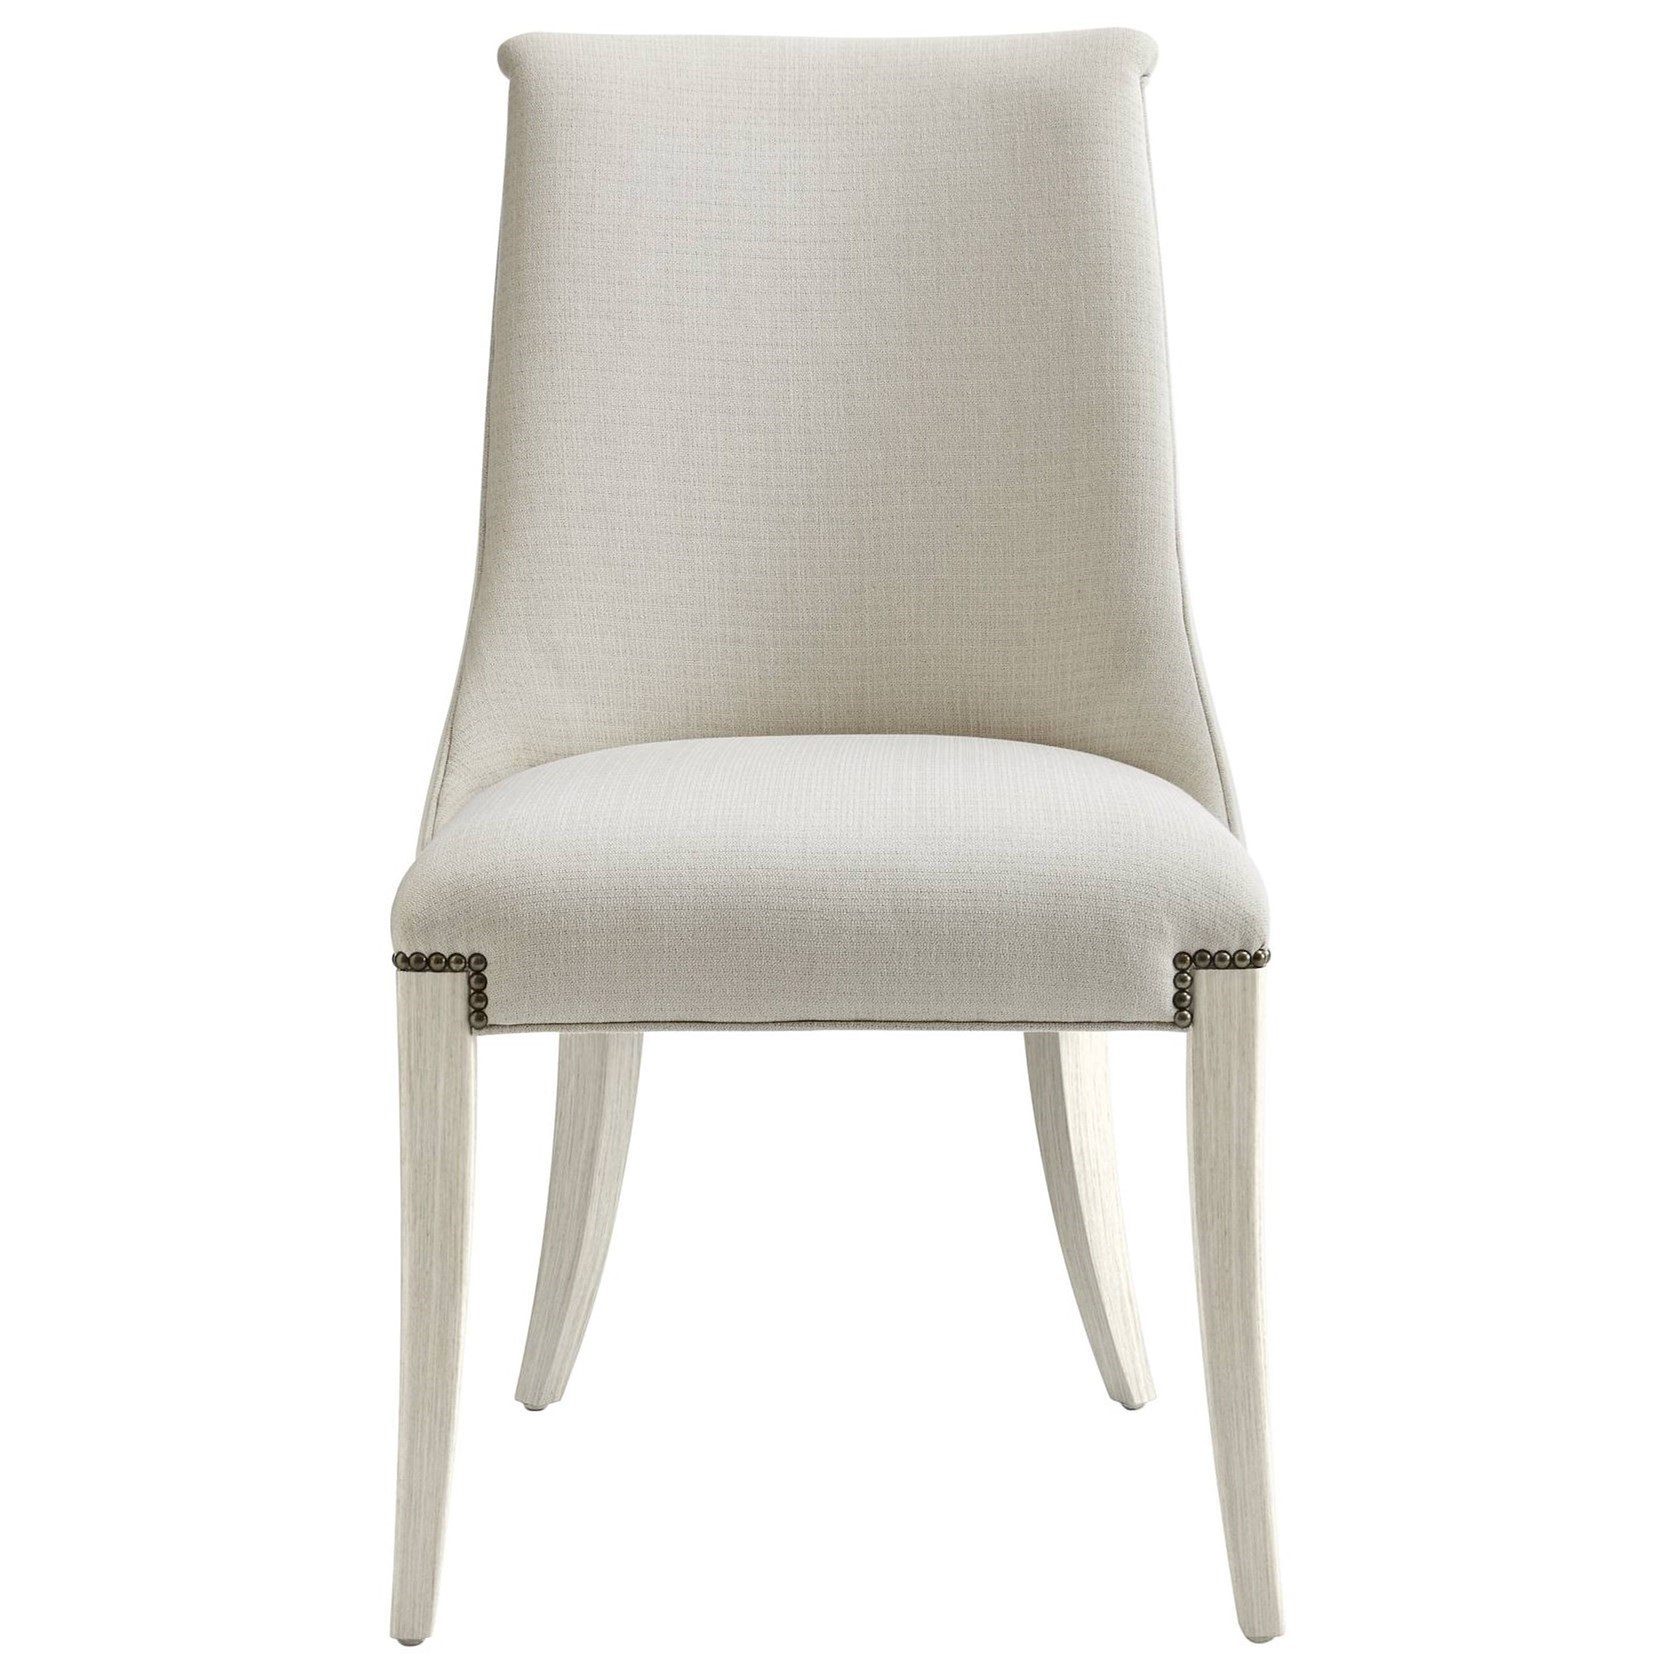 Stanley Furniture Coastal Living Oasis Wilshire Host Chair - Item Number: 527-51-75